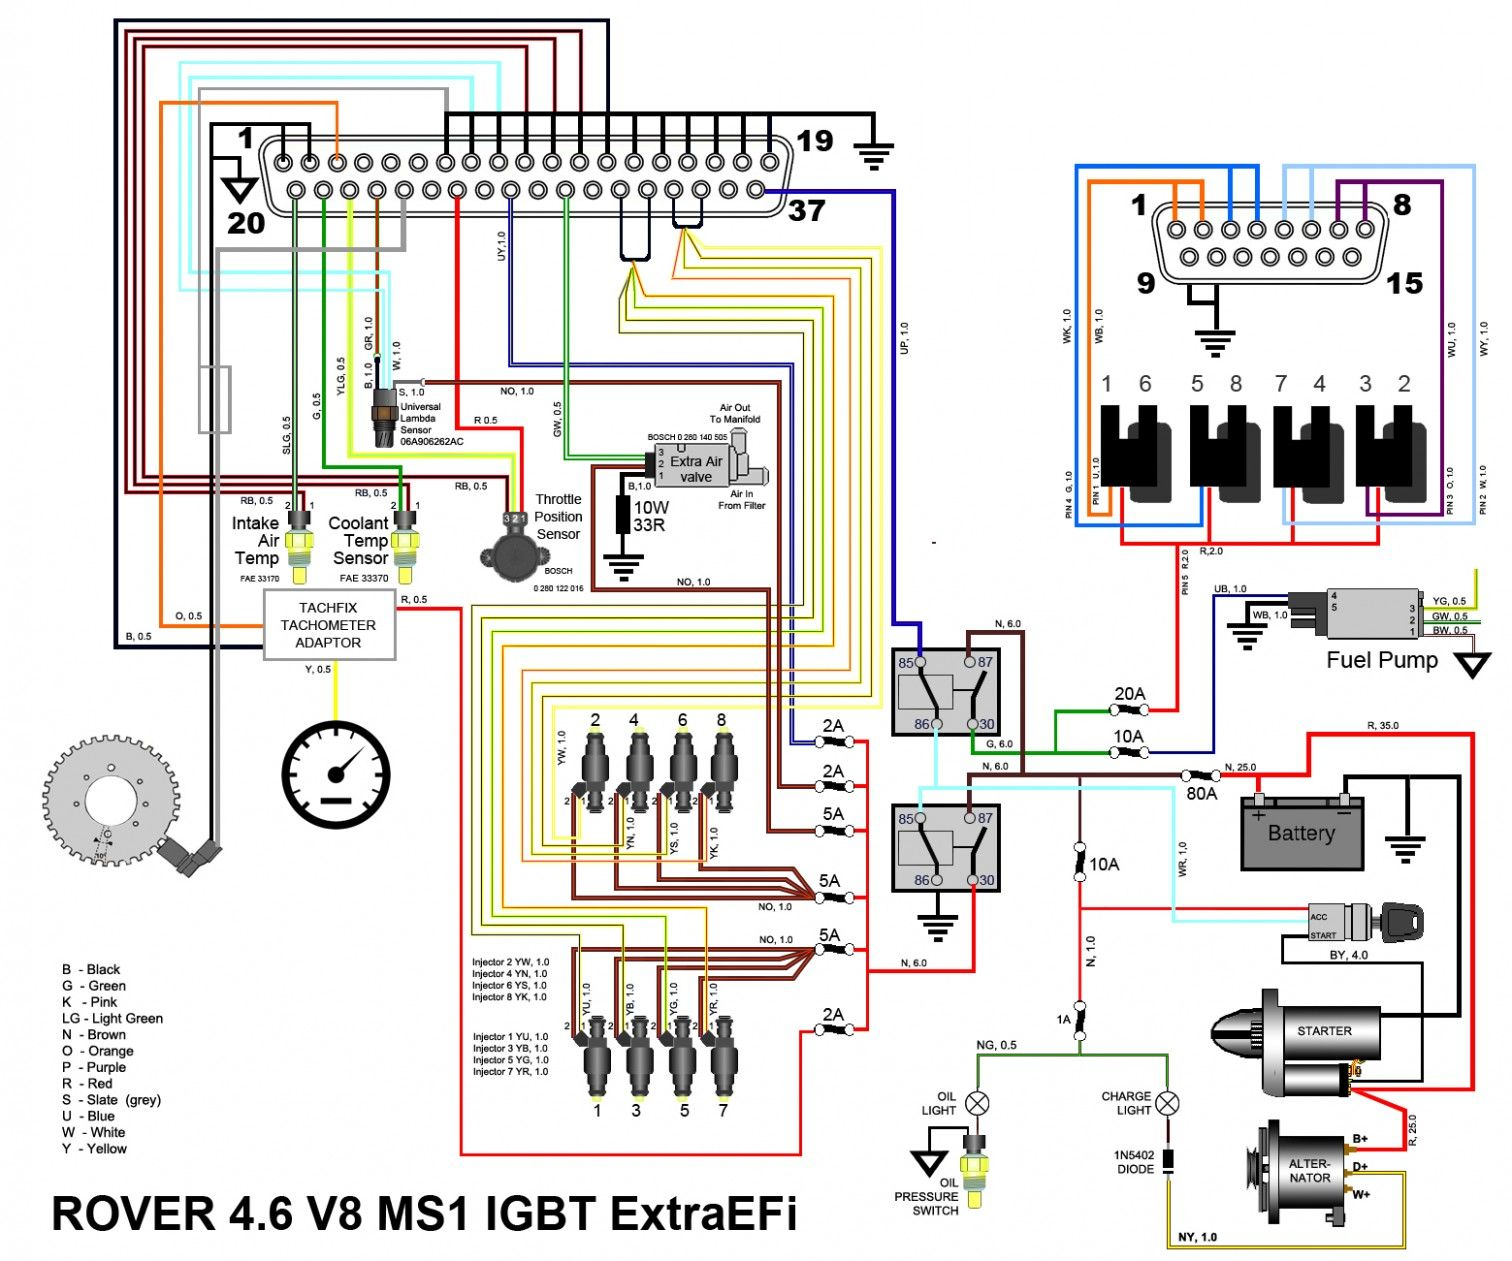 rover v4 engine wiring diagram di 2020  pinterest